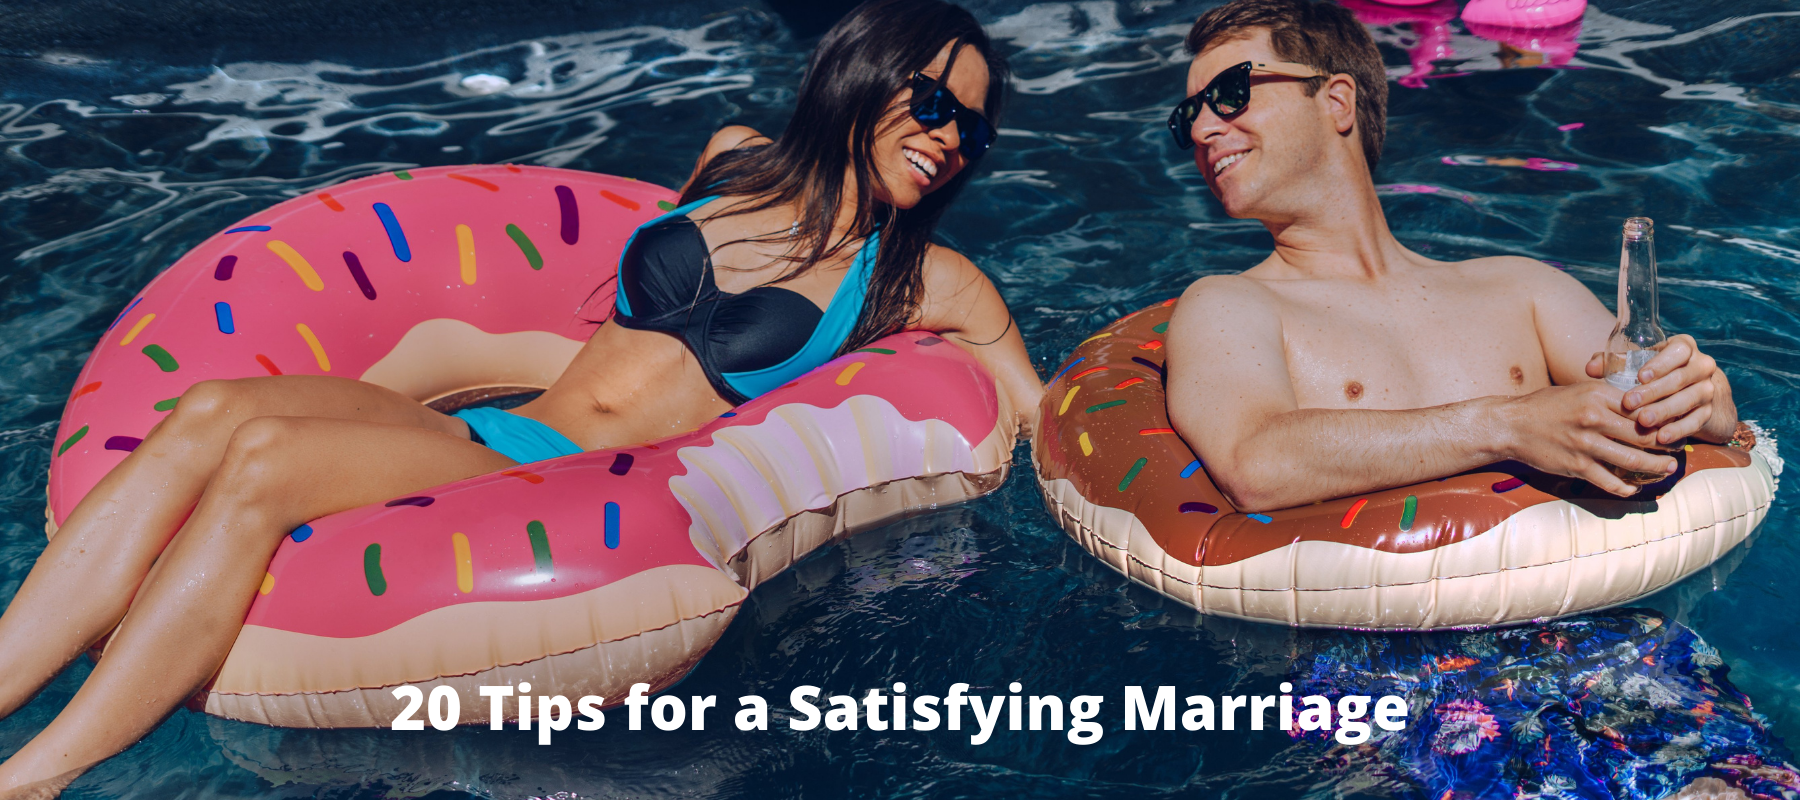 20-tips-for-a-satisfying-marriage